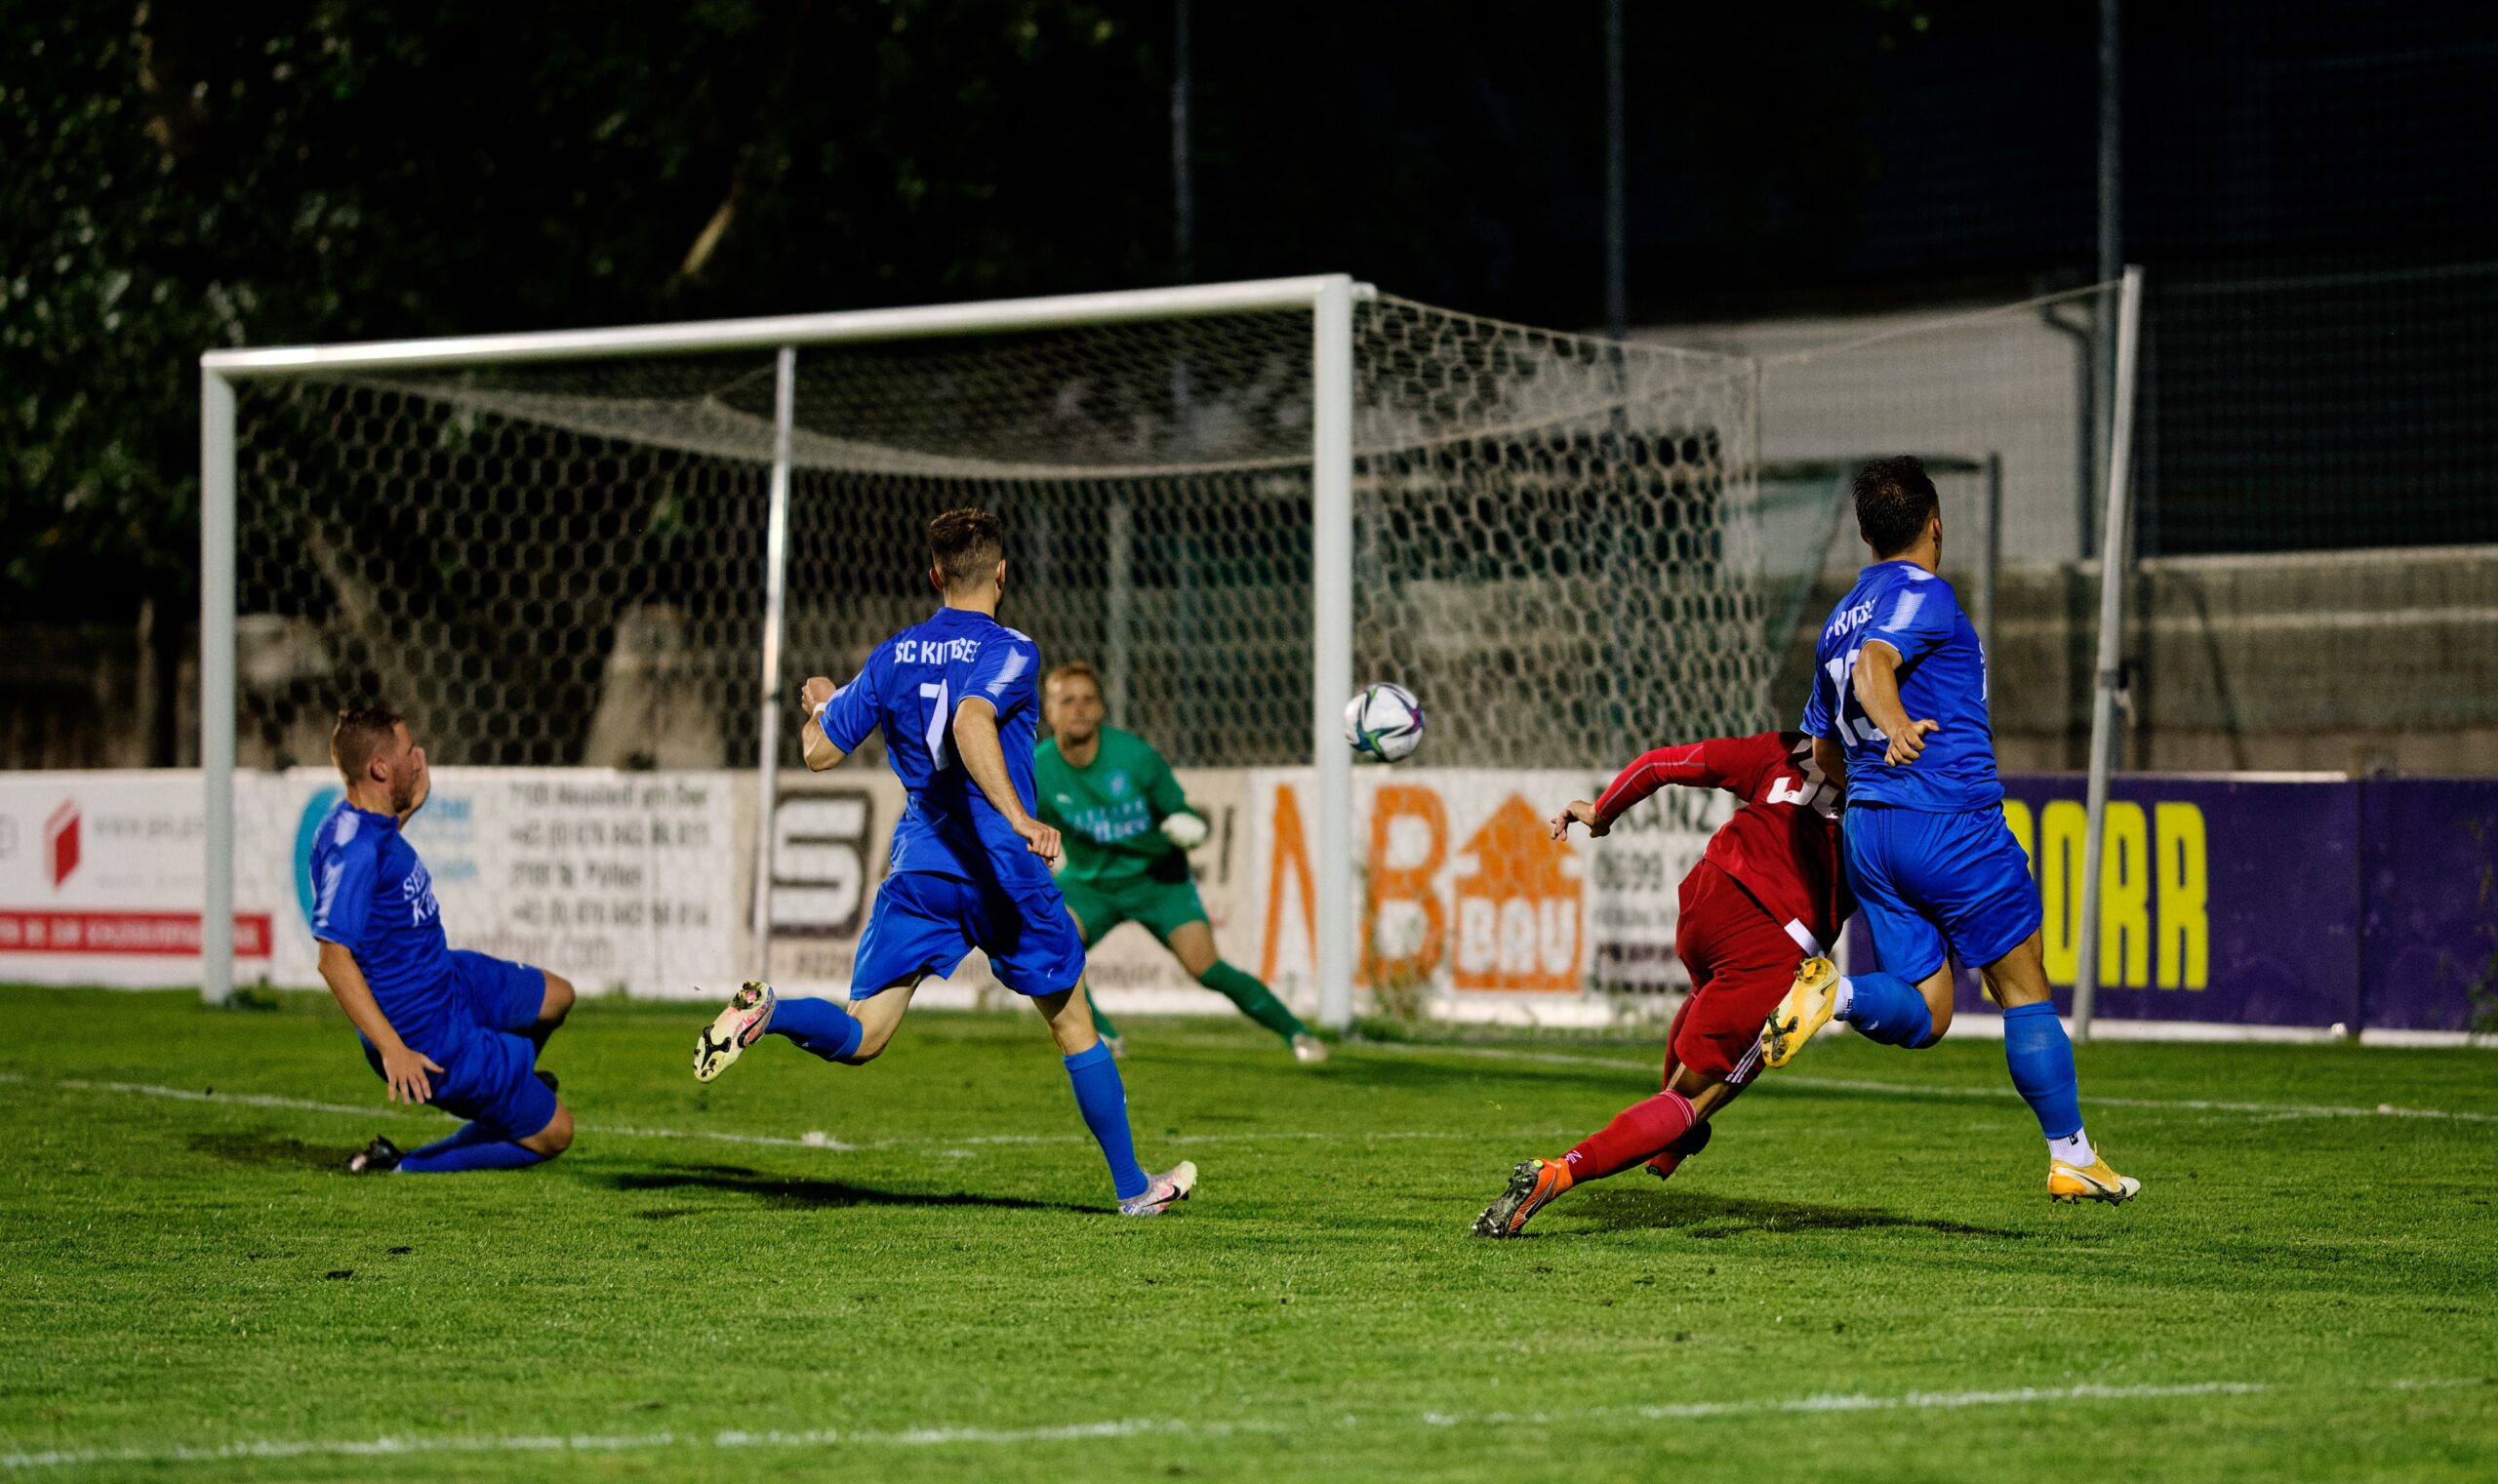 Secco shoots on goal